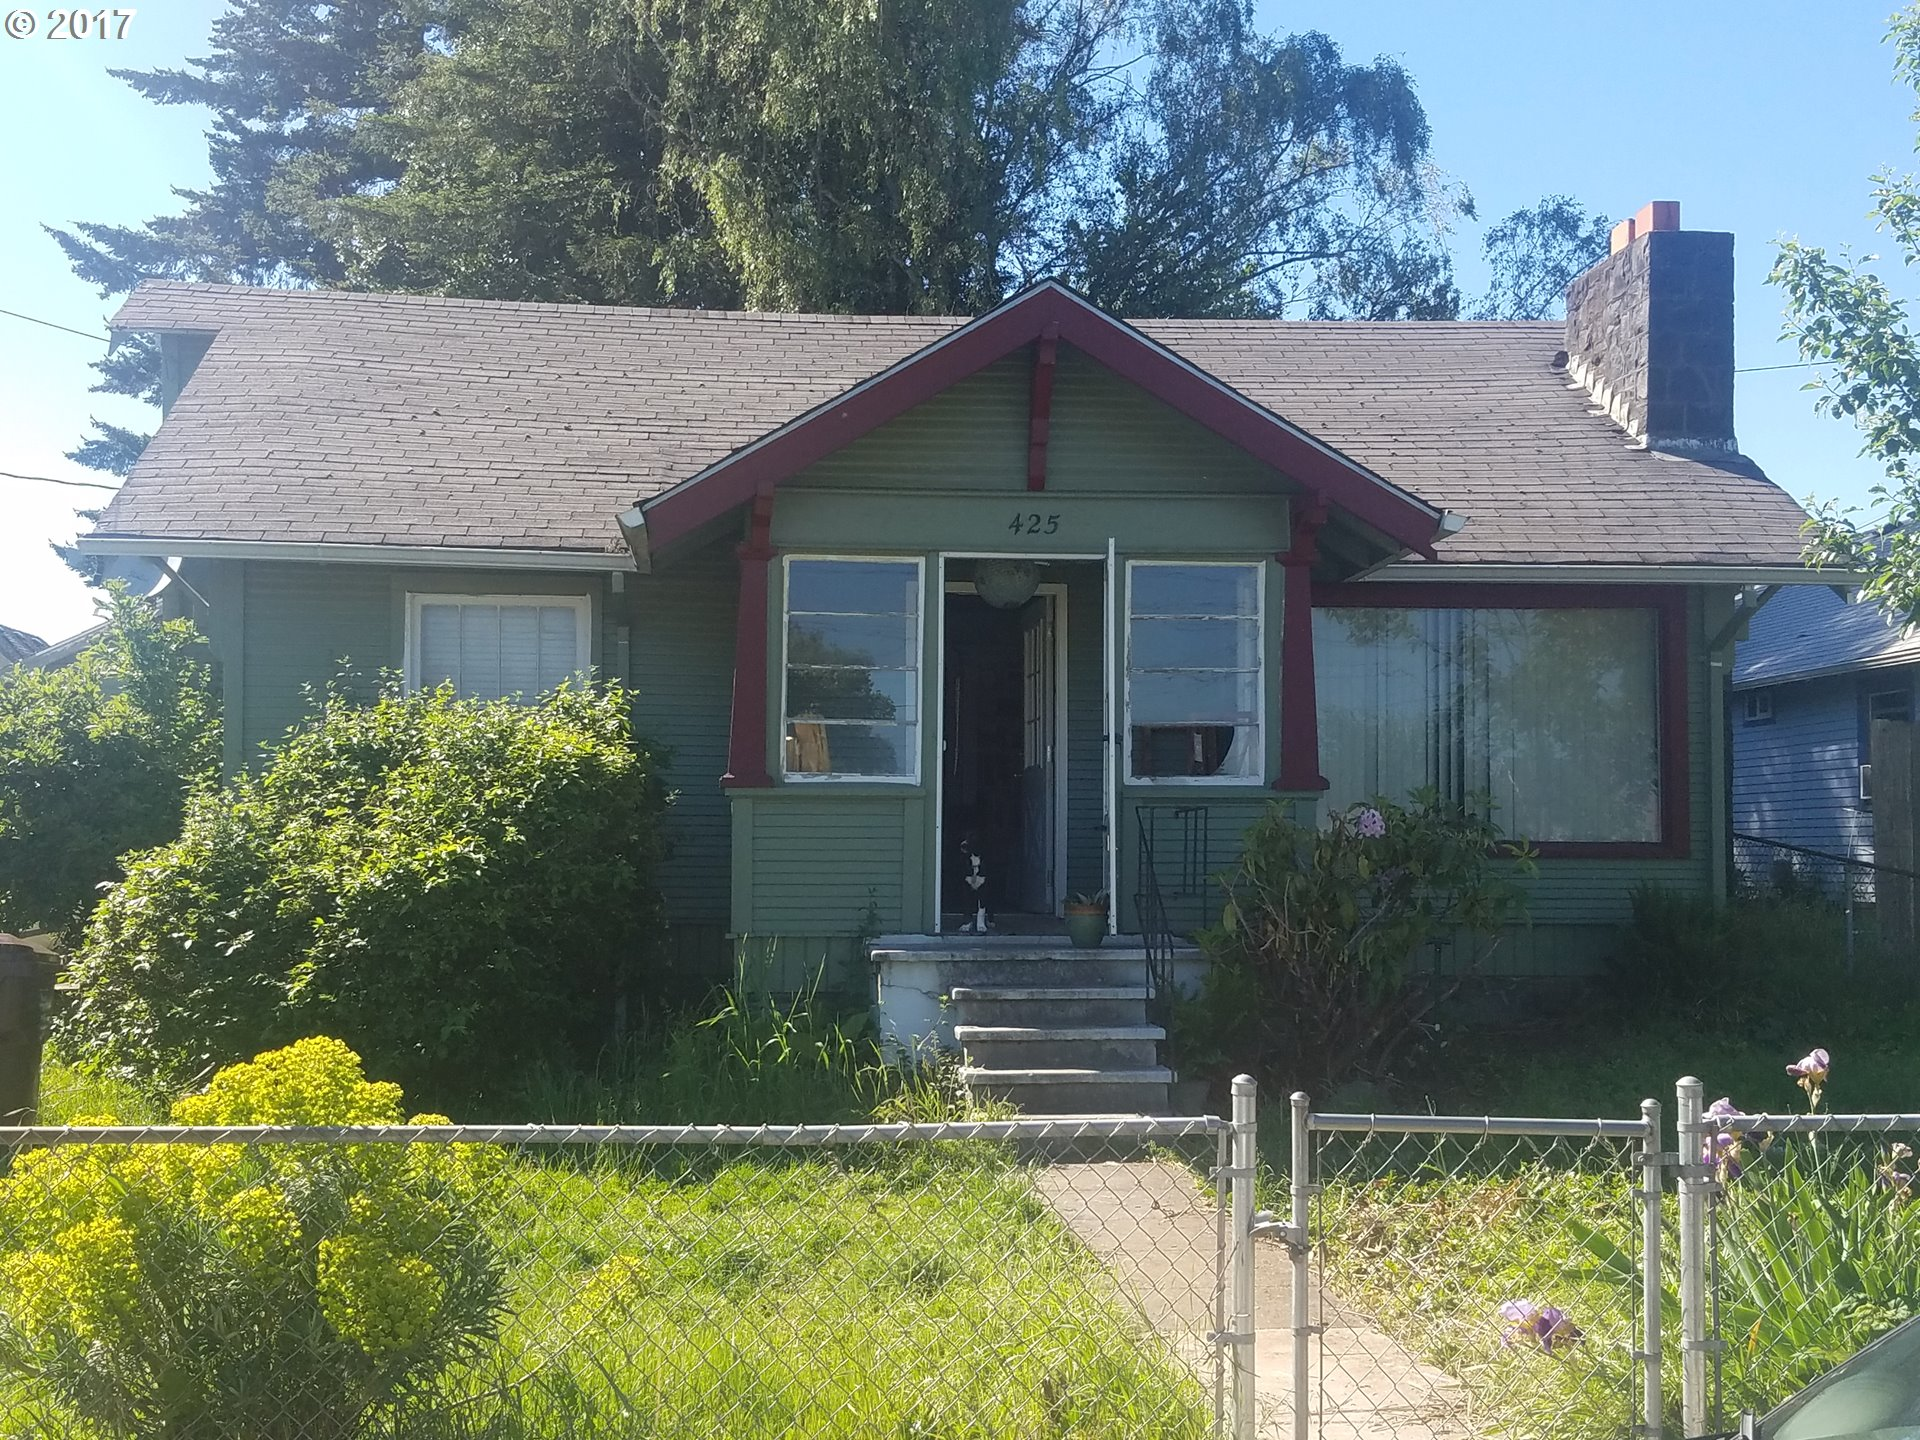 425 CROUSE WAY, St. Helens, OR 97051